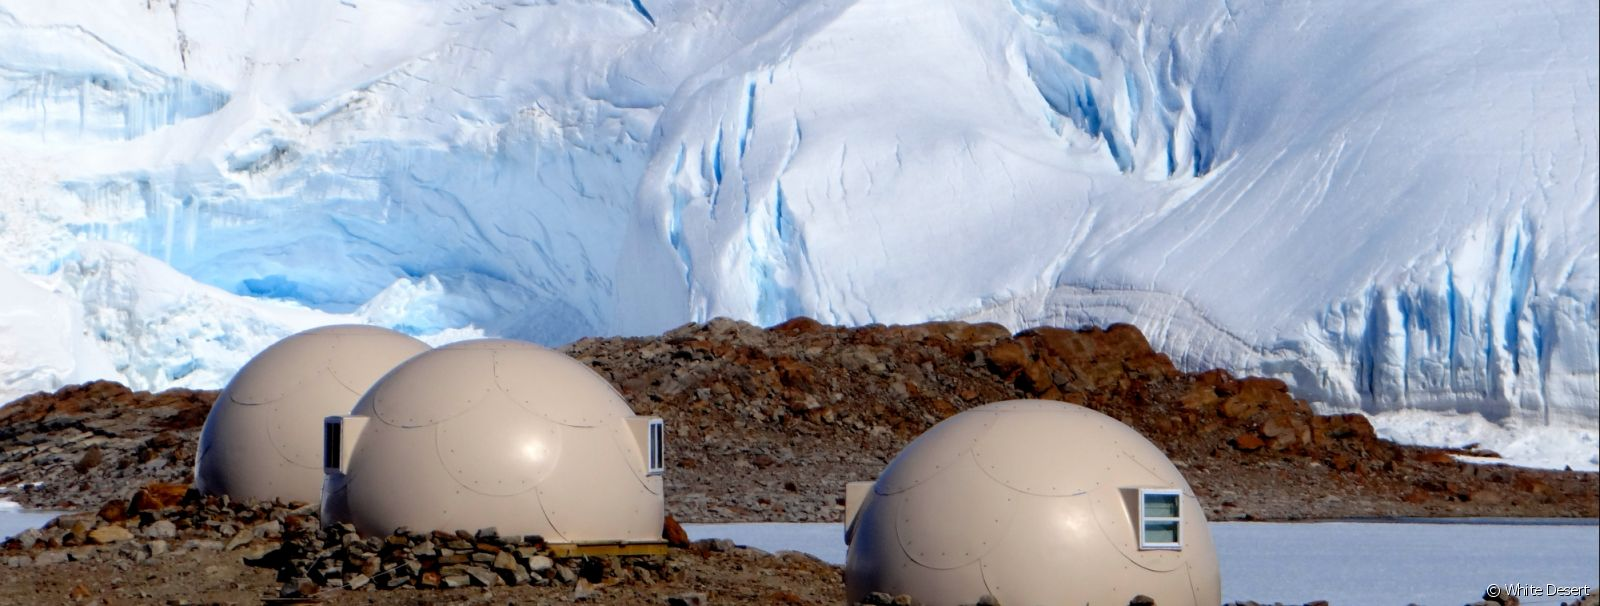 Sleeping pods in front of the ice fall